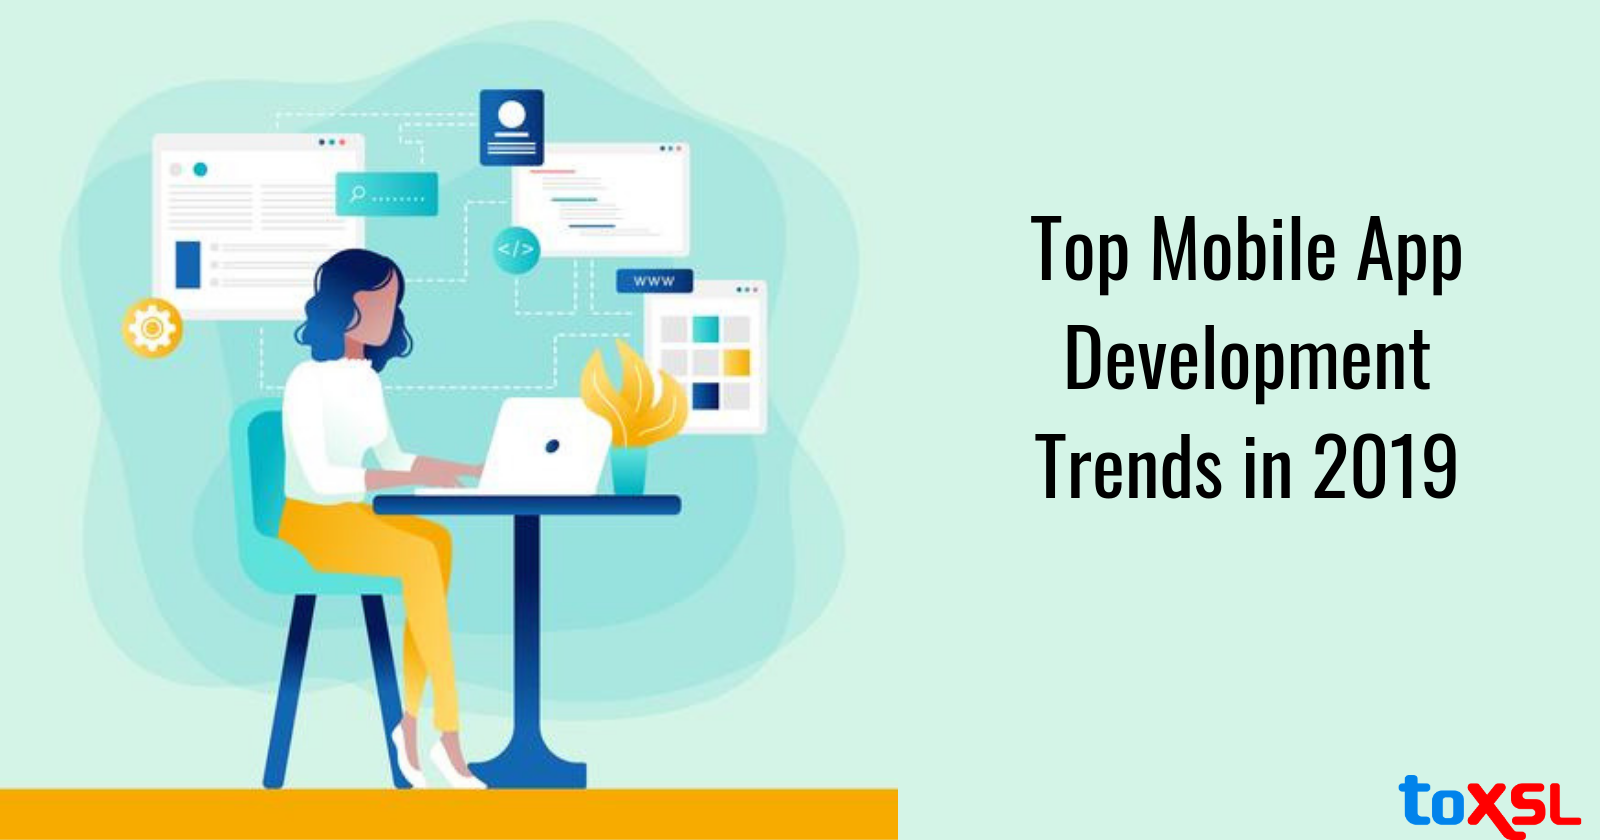 Top Mobile App Development Trends in 2019